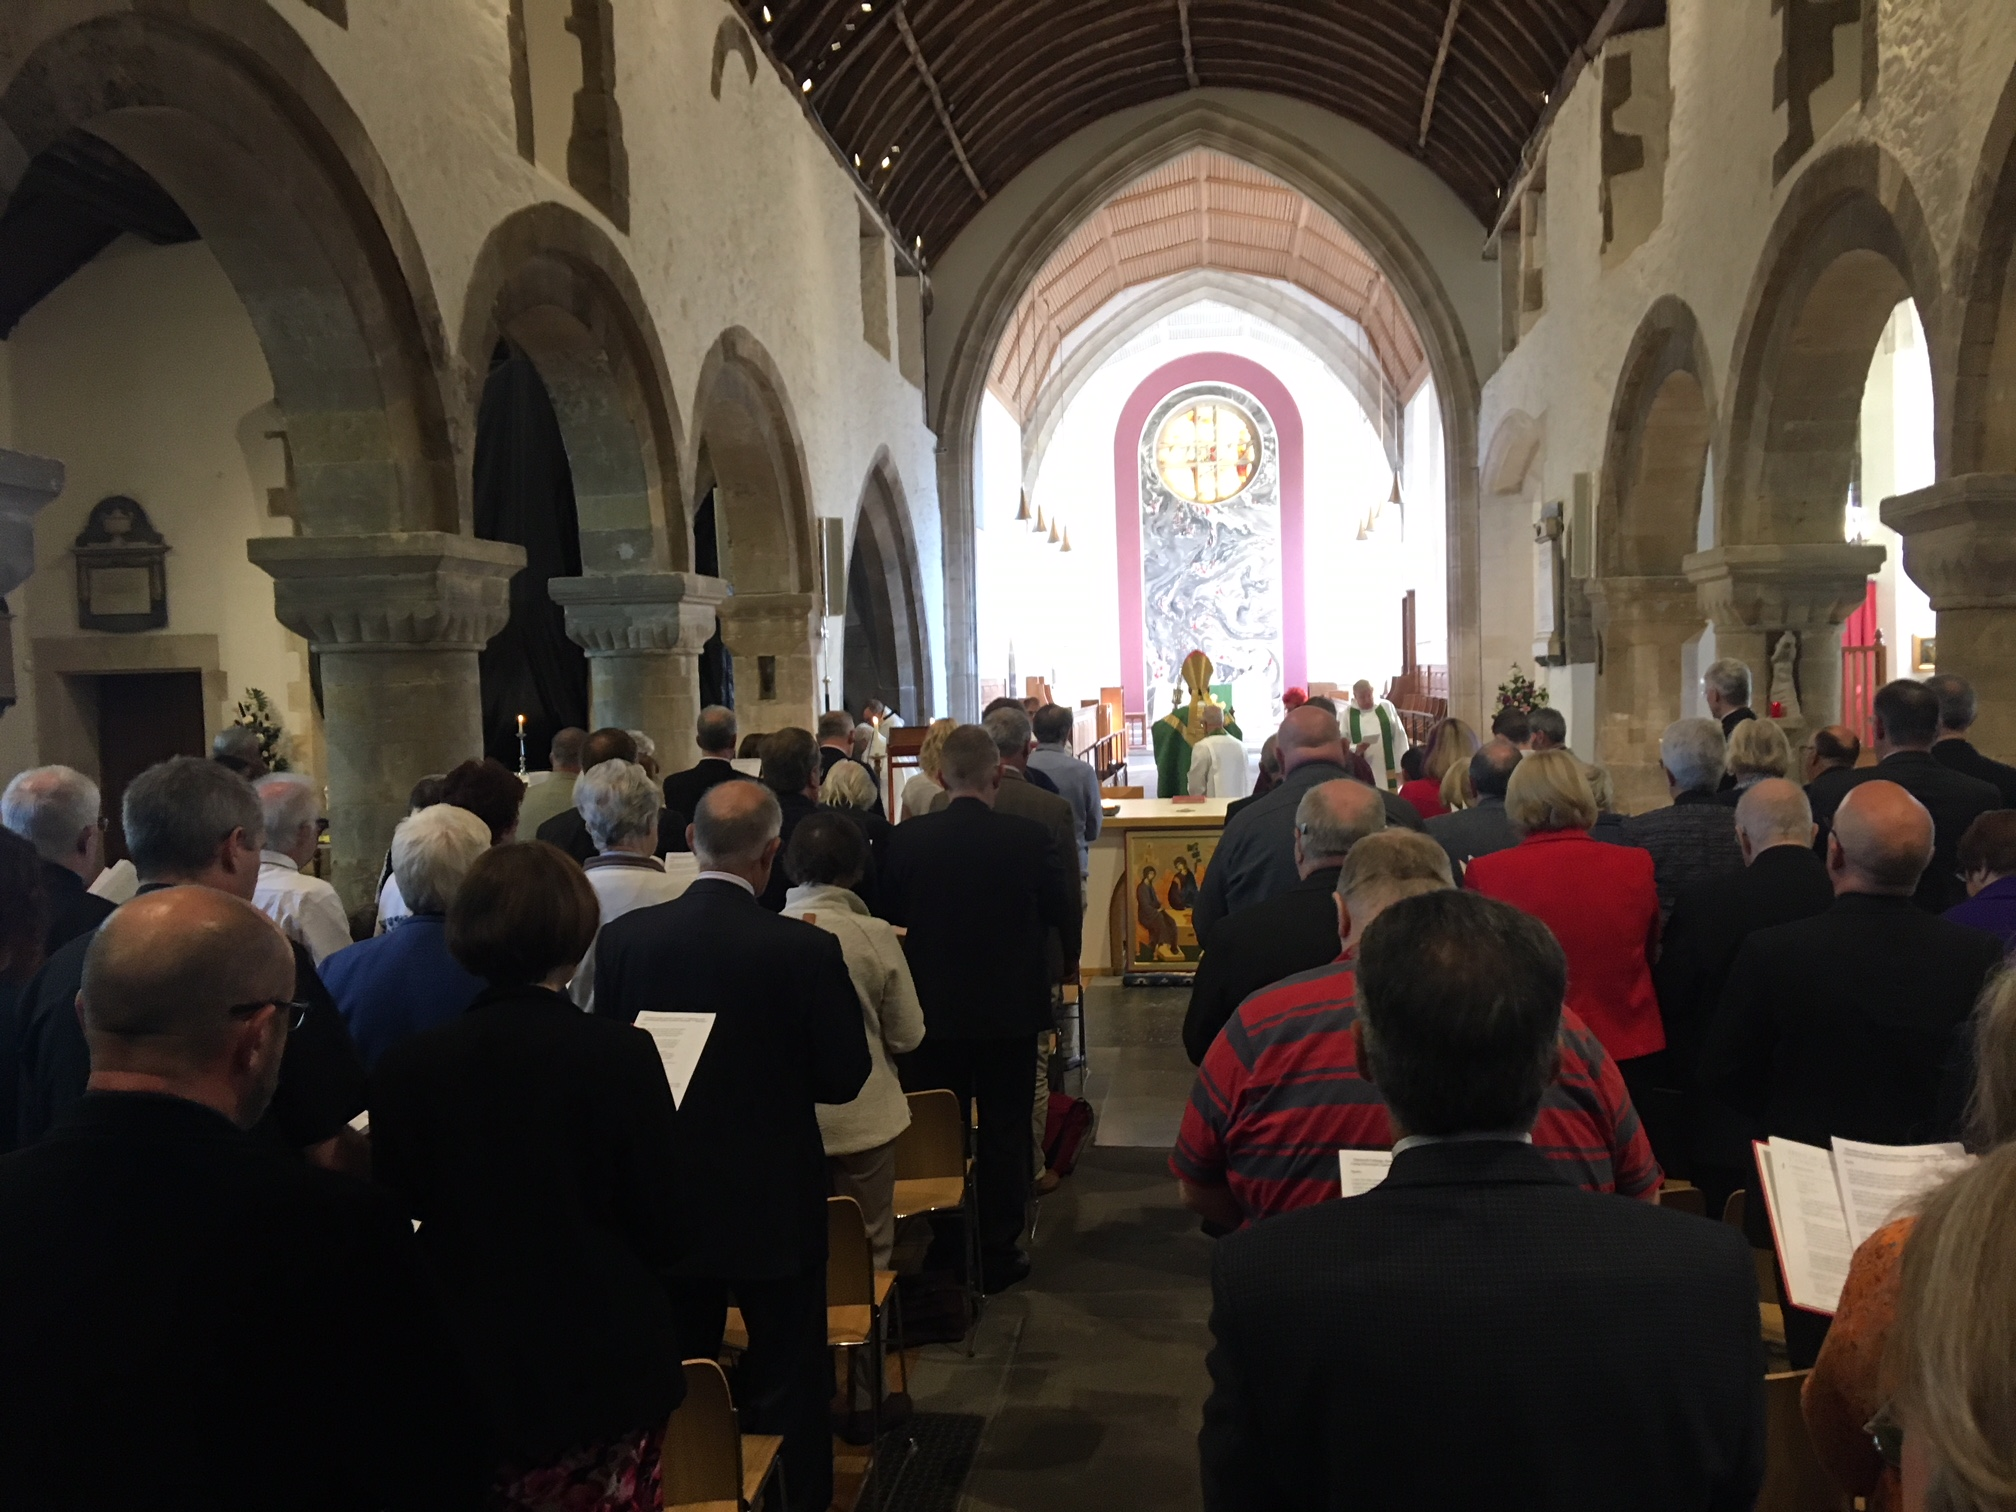 Newport Cathedral is in lockdown as the process of electing a new Bishop of Monmouth gets underway